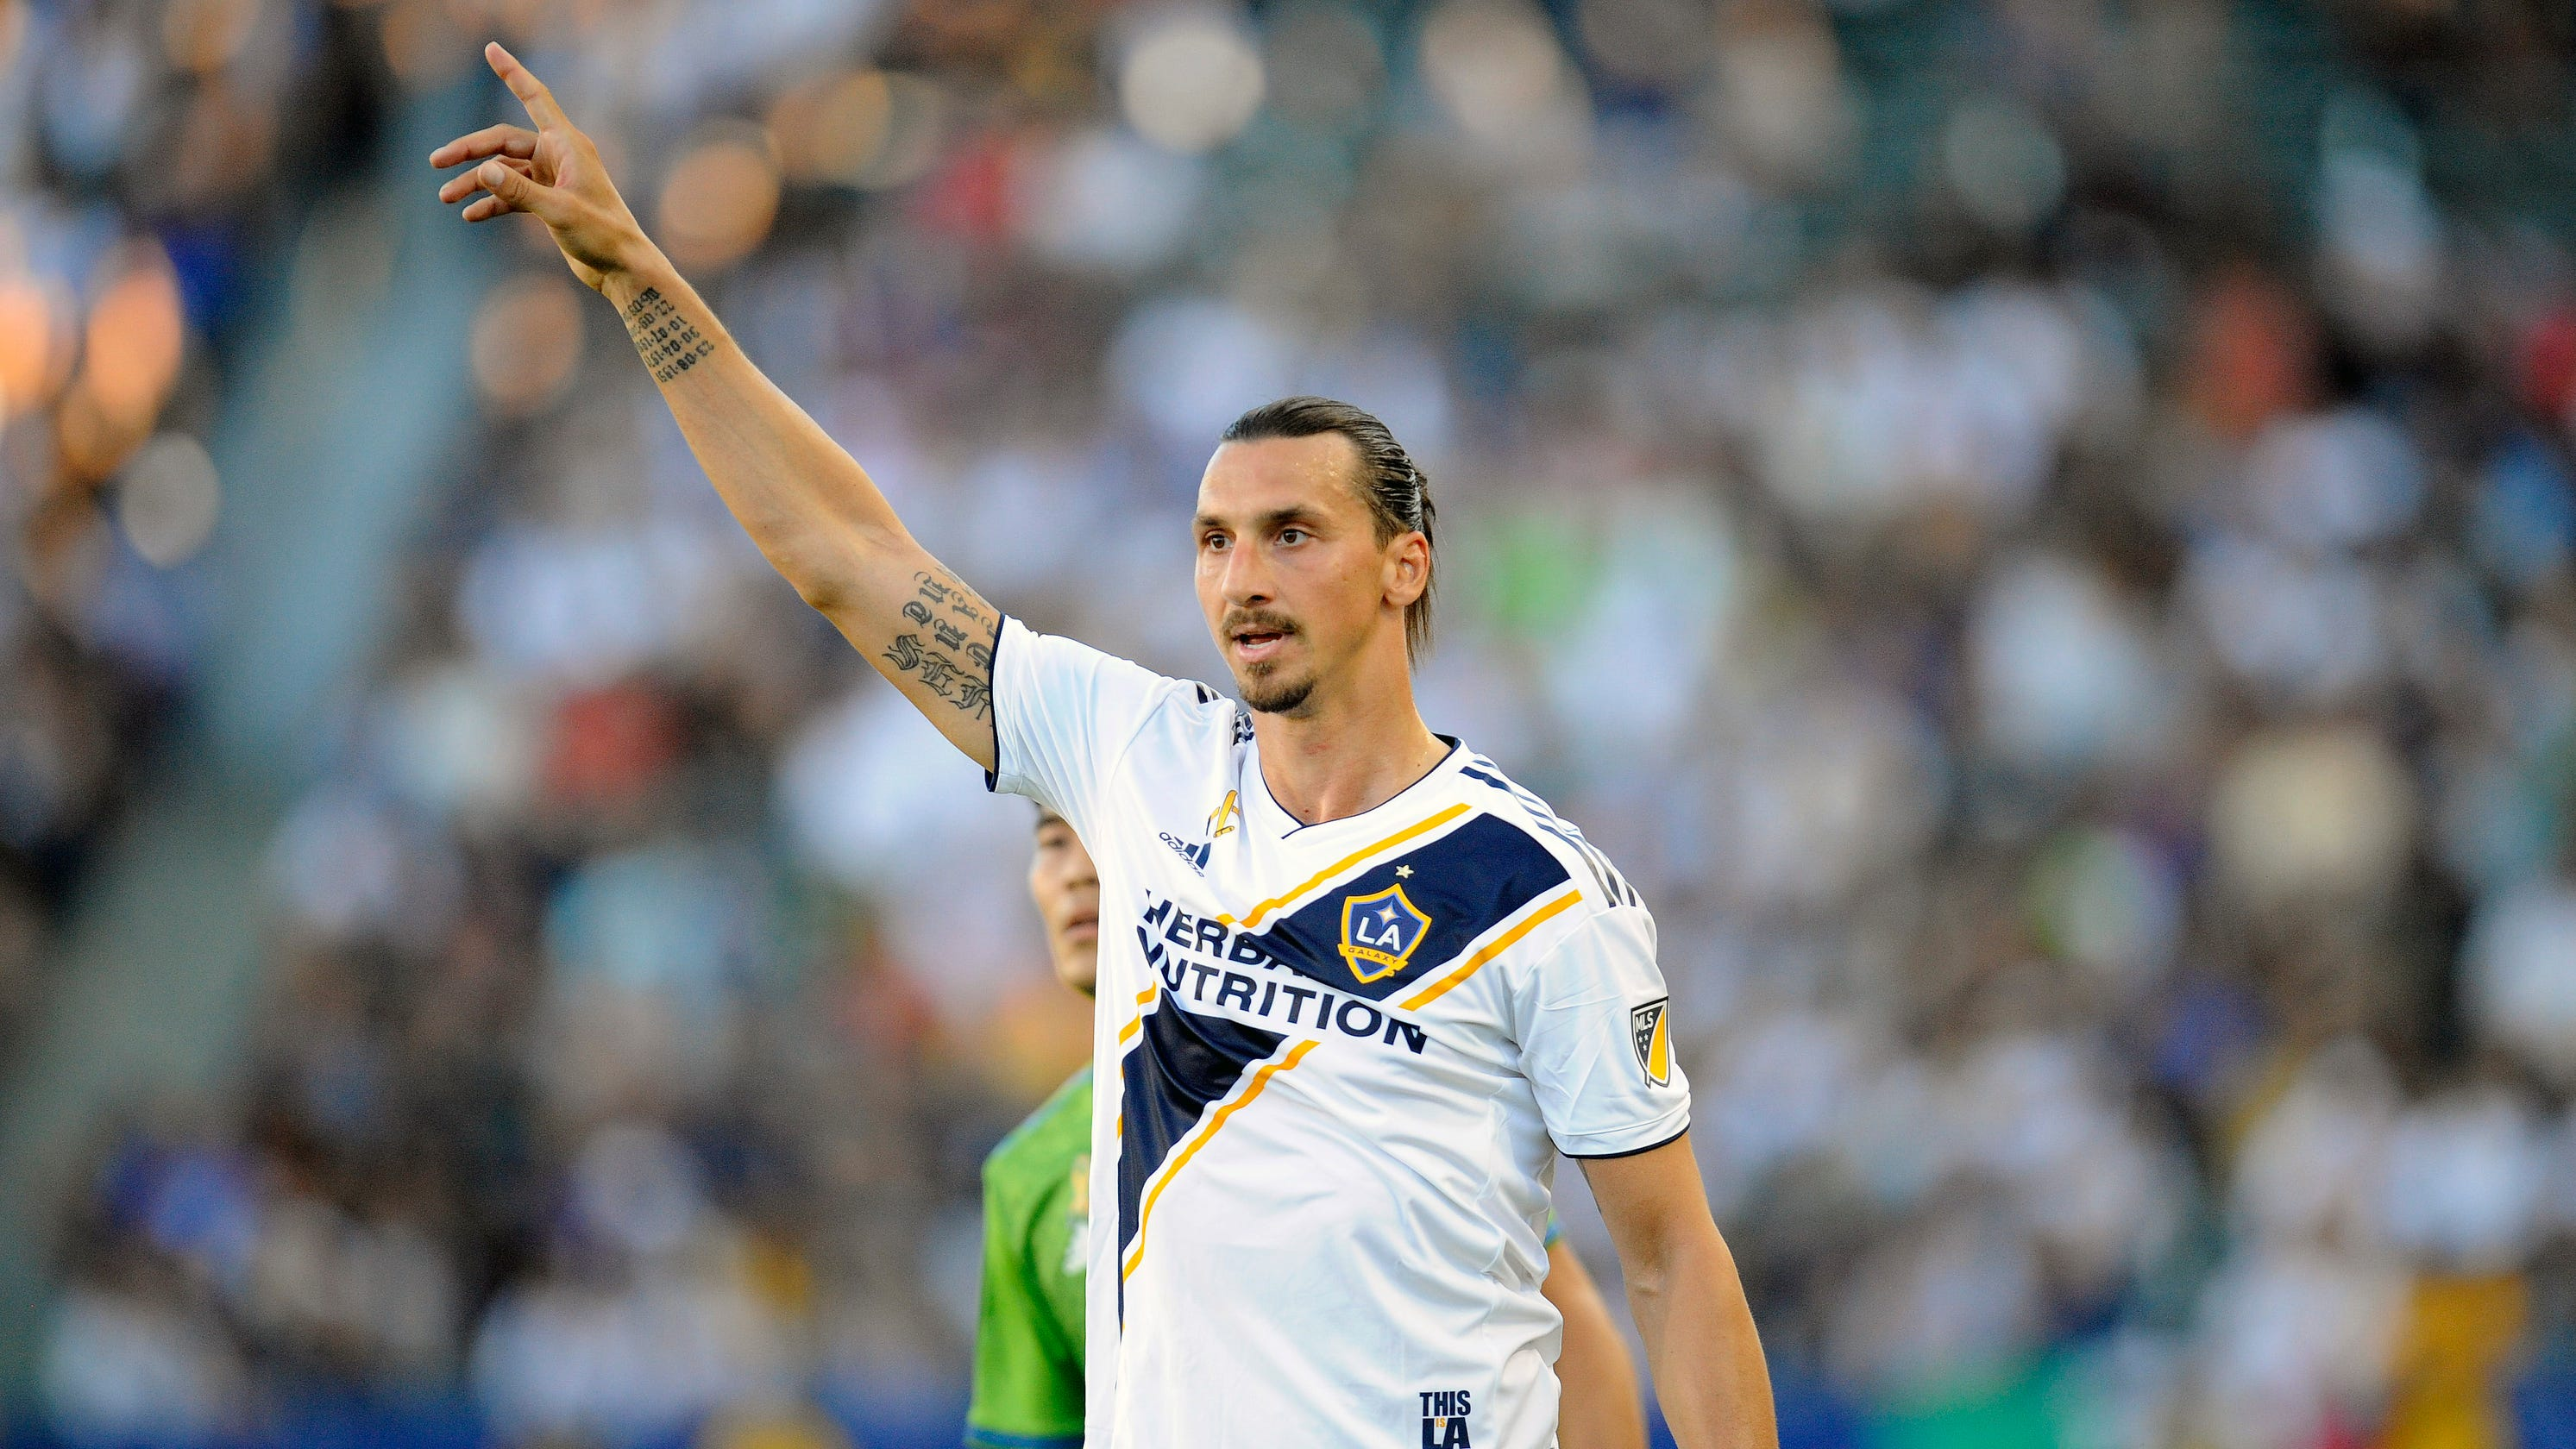 cfd185db3 Zlatan Ibrahimovic  LA Galaxy star could return for 2019 MLS season